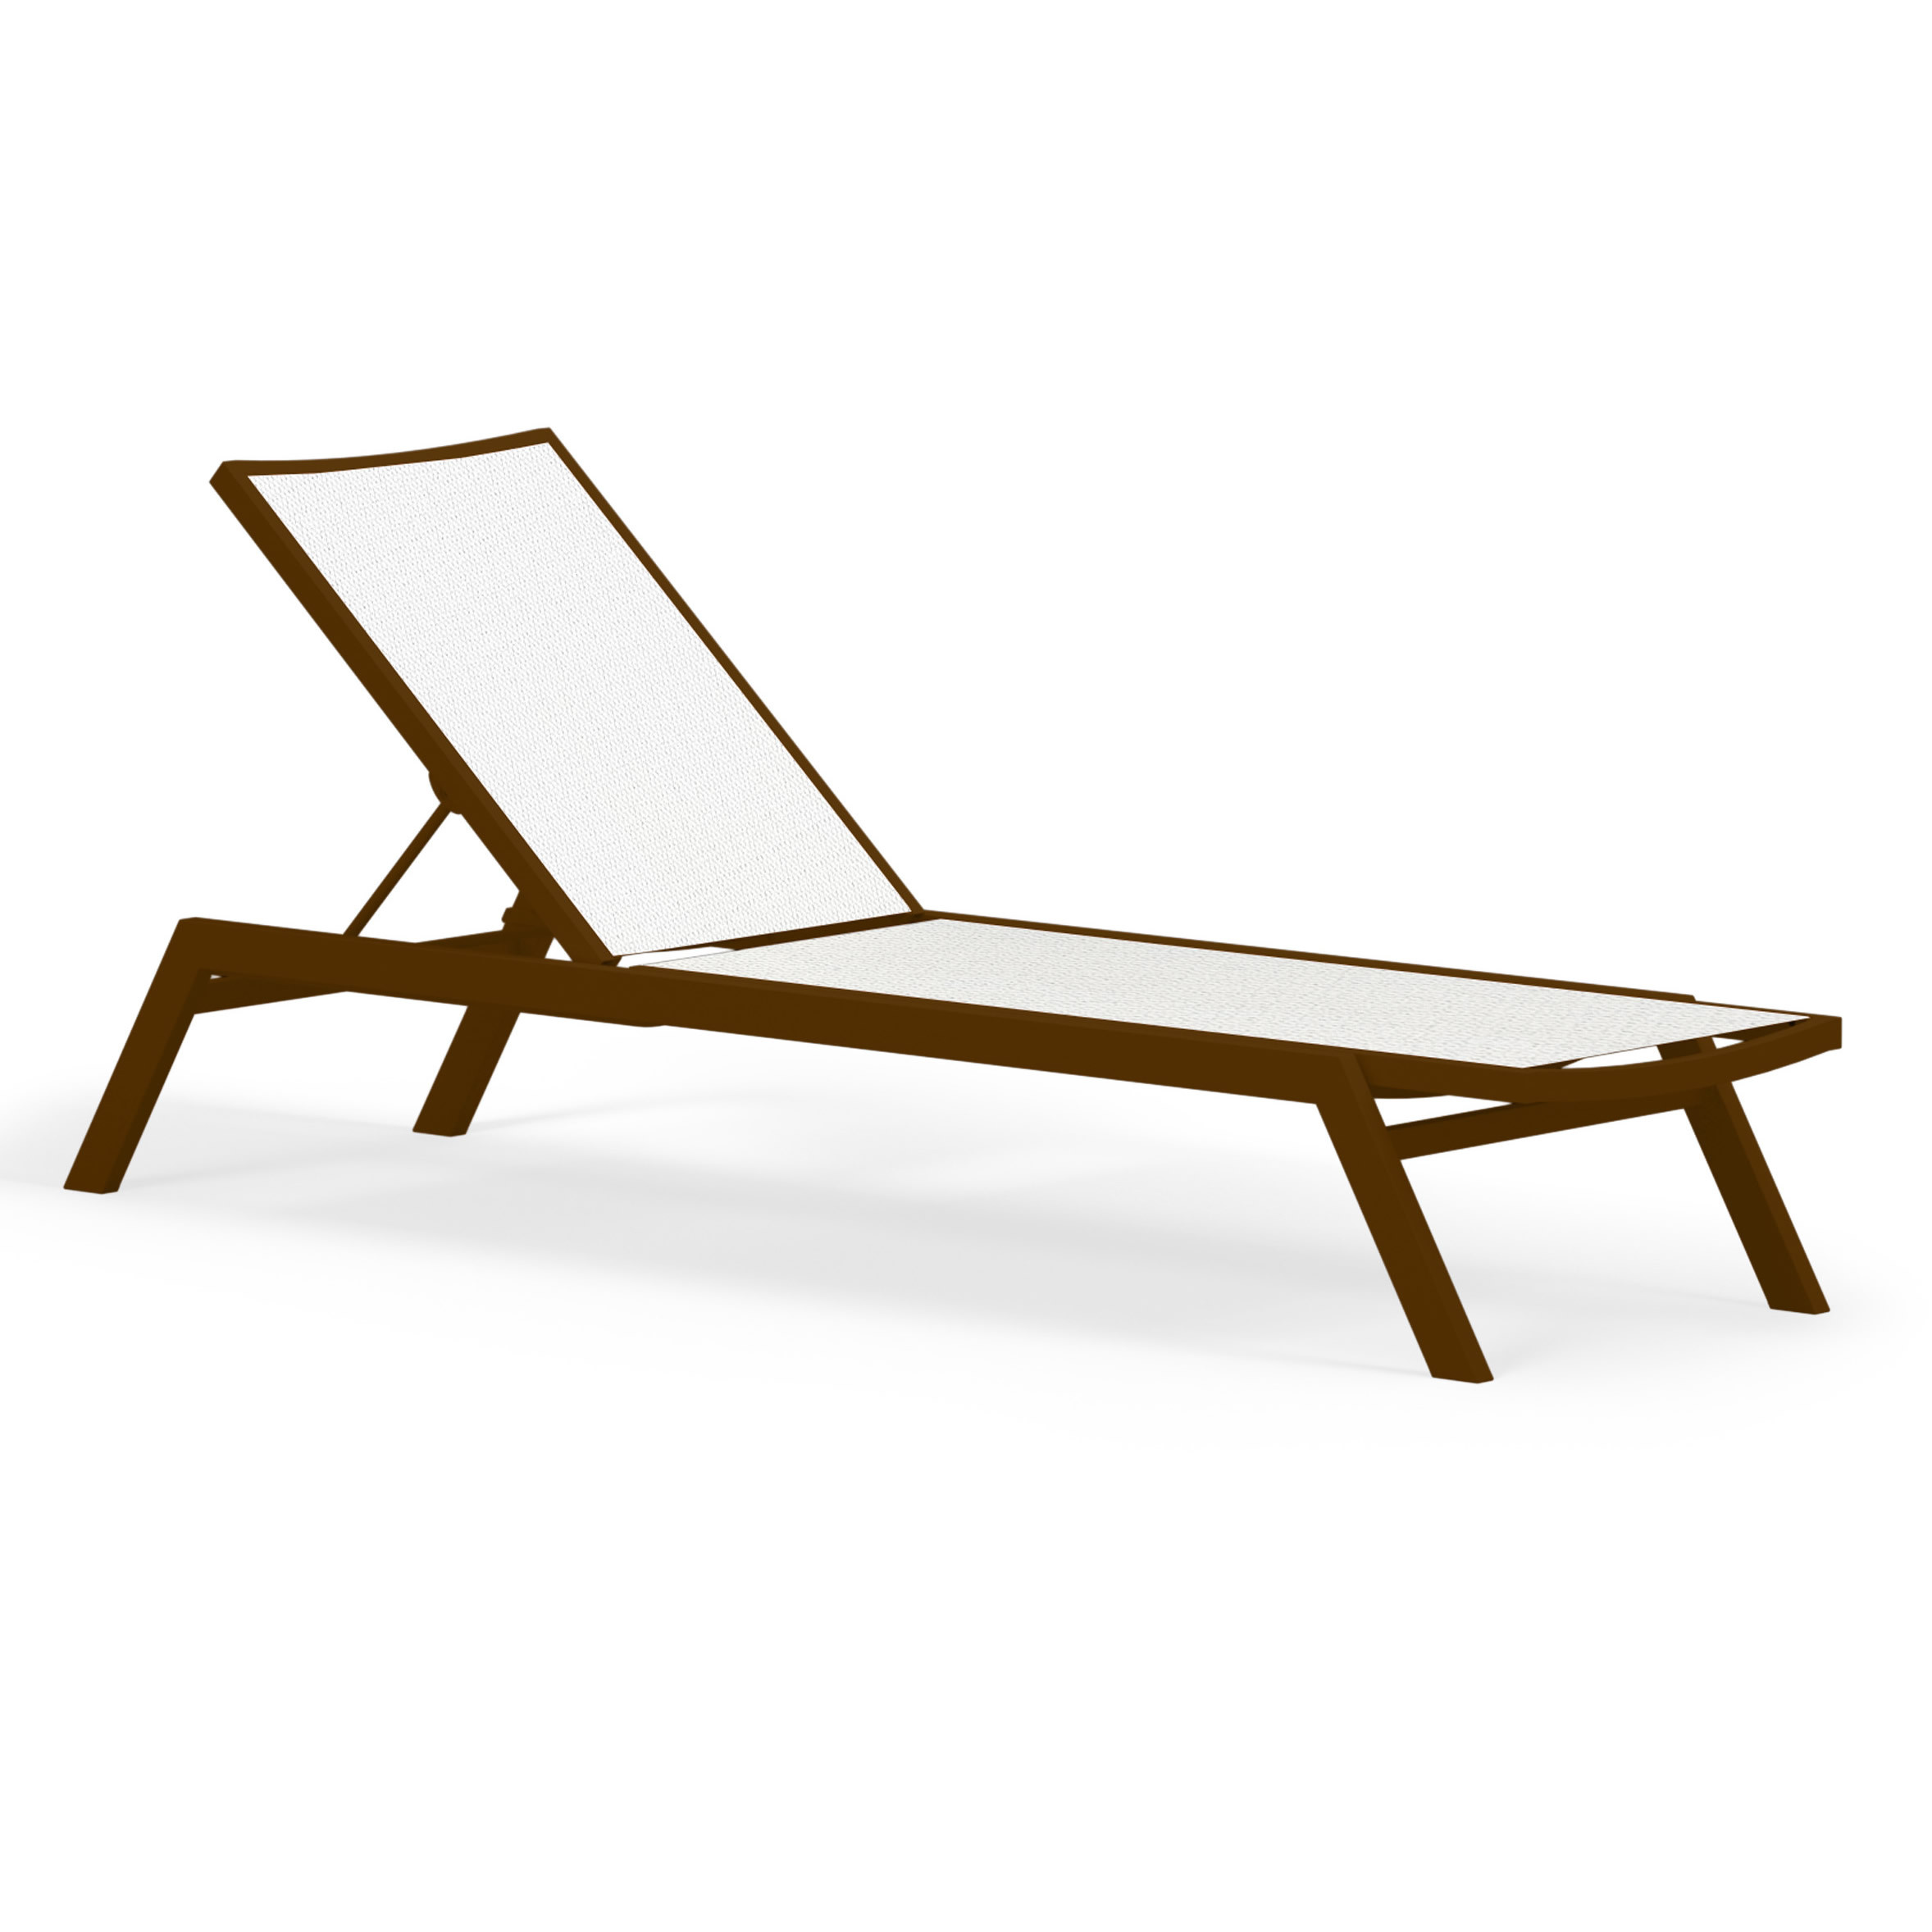 POLYWOOD Bayline Chaise Lounge